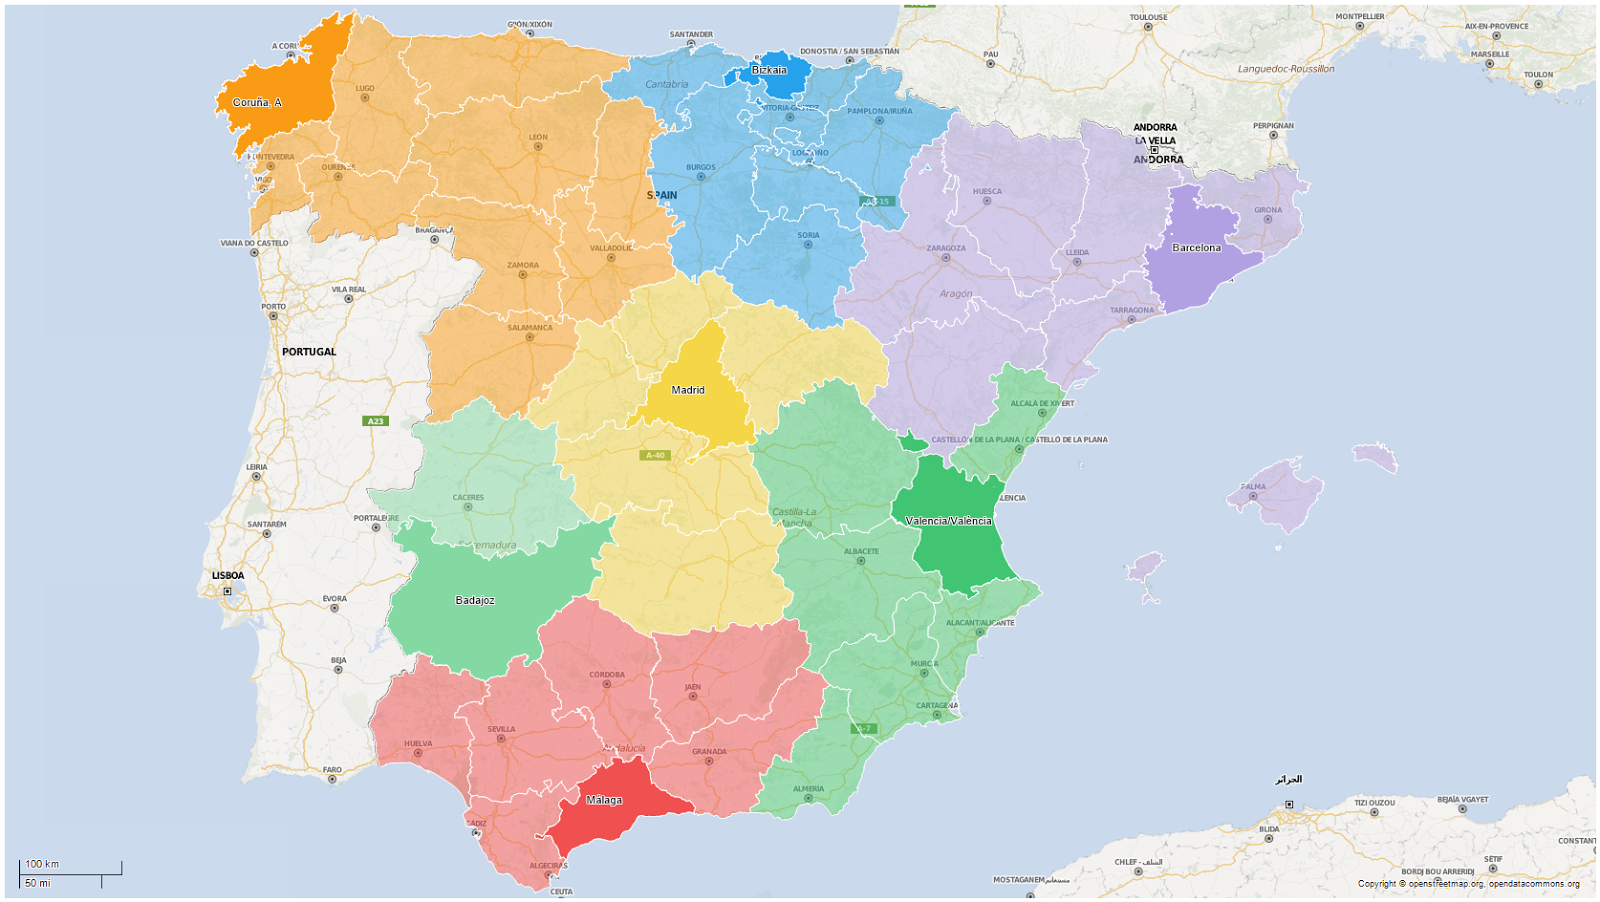 Big Map Of Spain.The New Spain Redrawing The Country Using Mobility Data Think Big